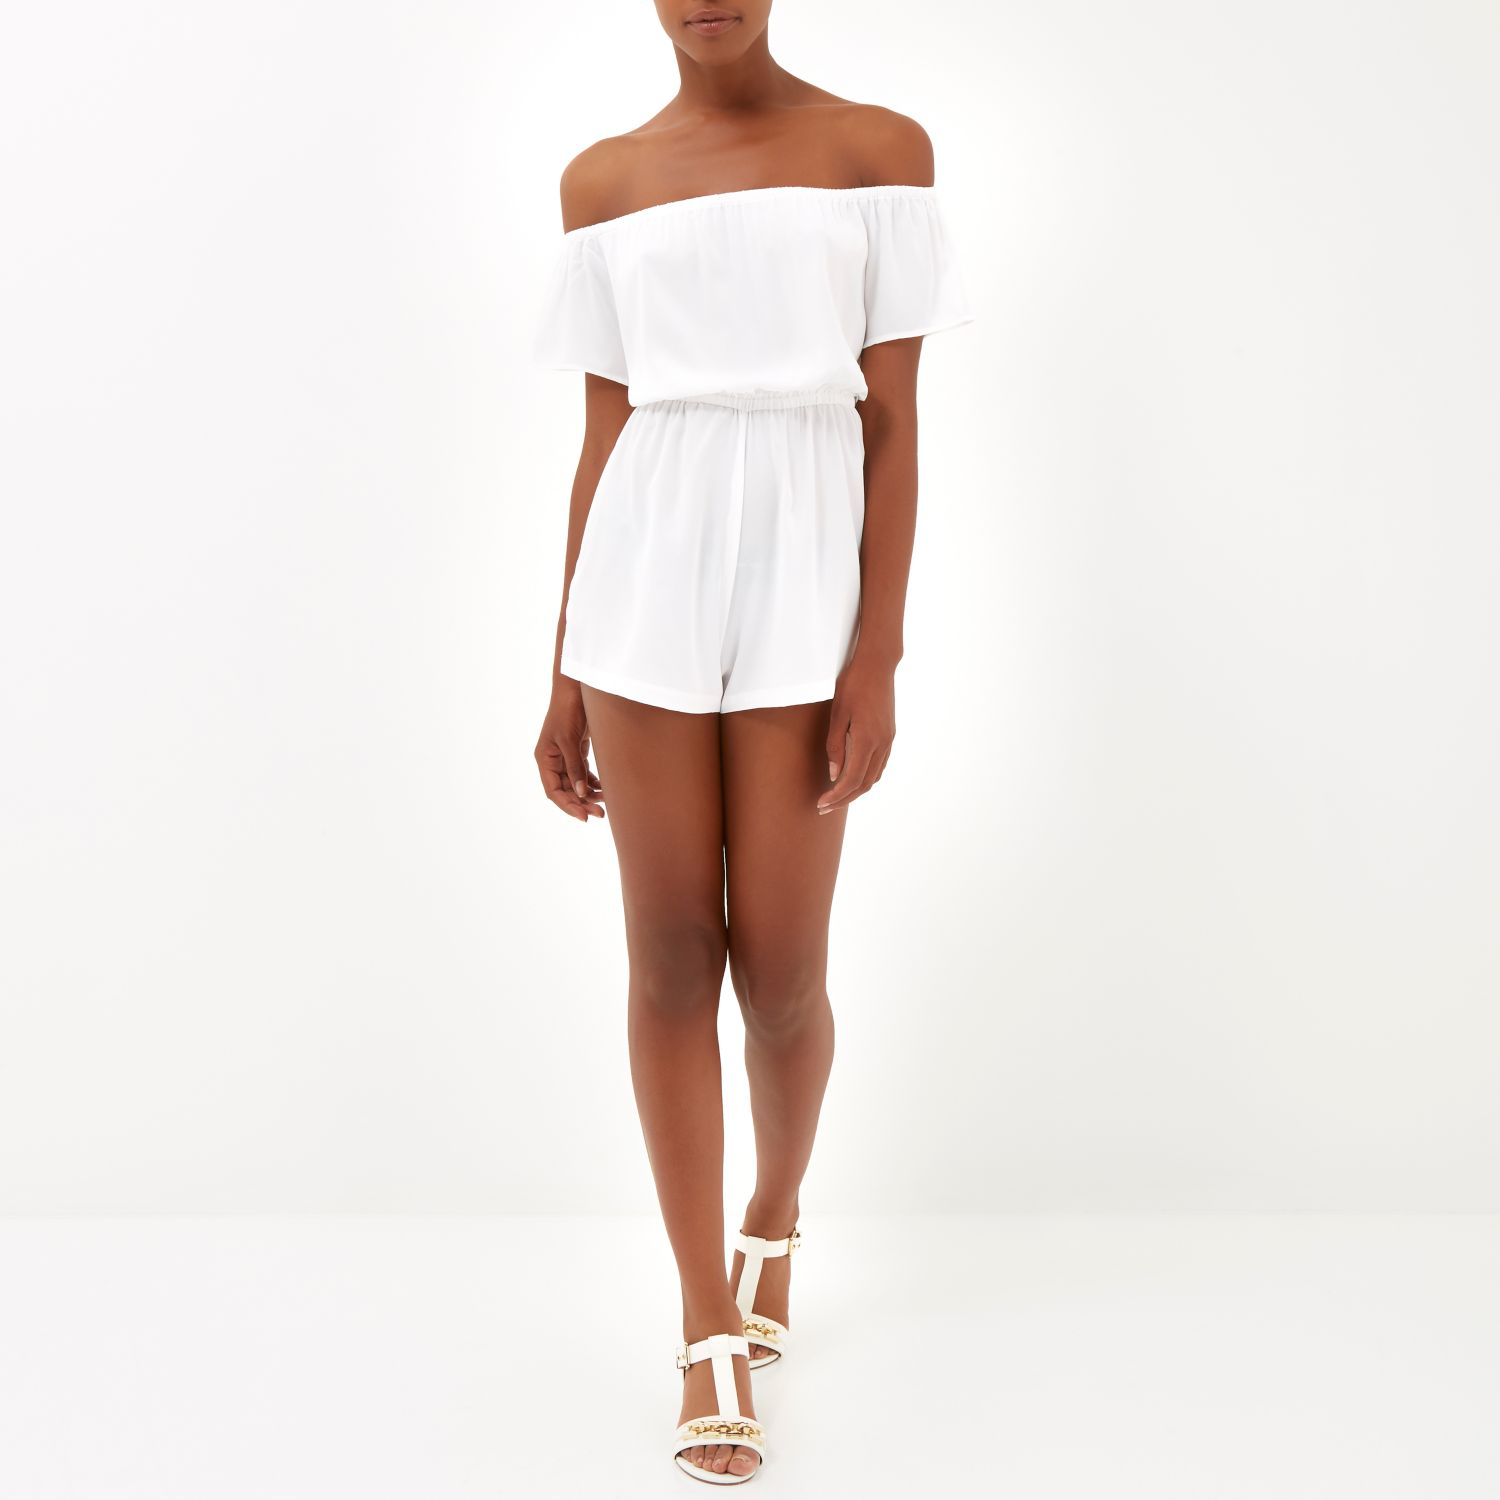 aa23c20e5b1 River Island White Bardot Playsuit in White - Lyst